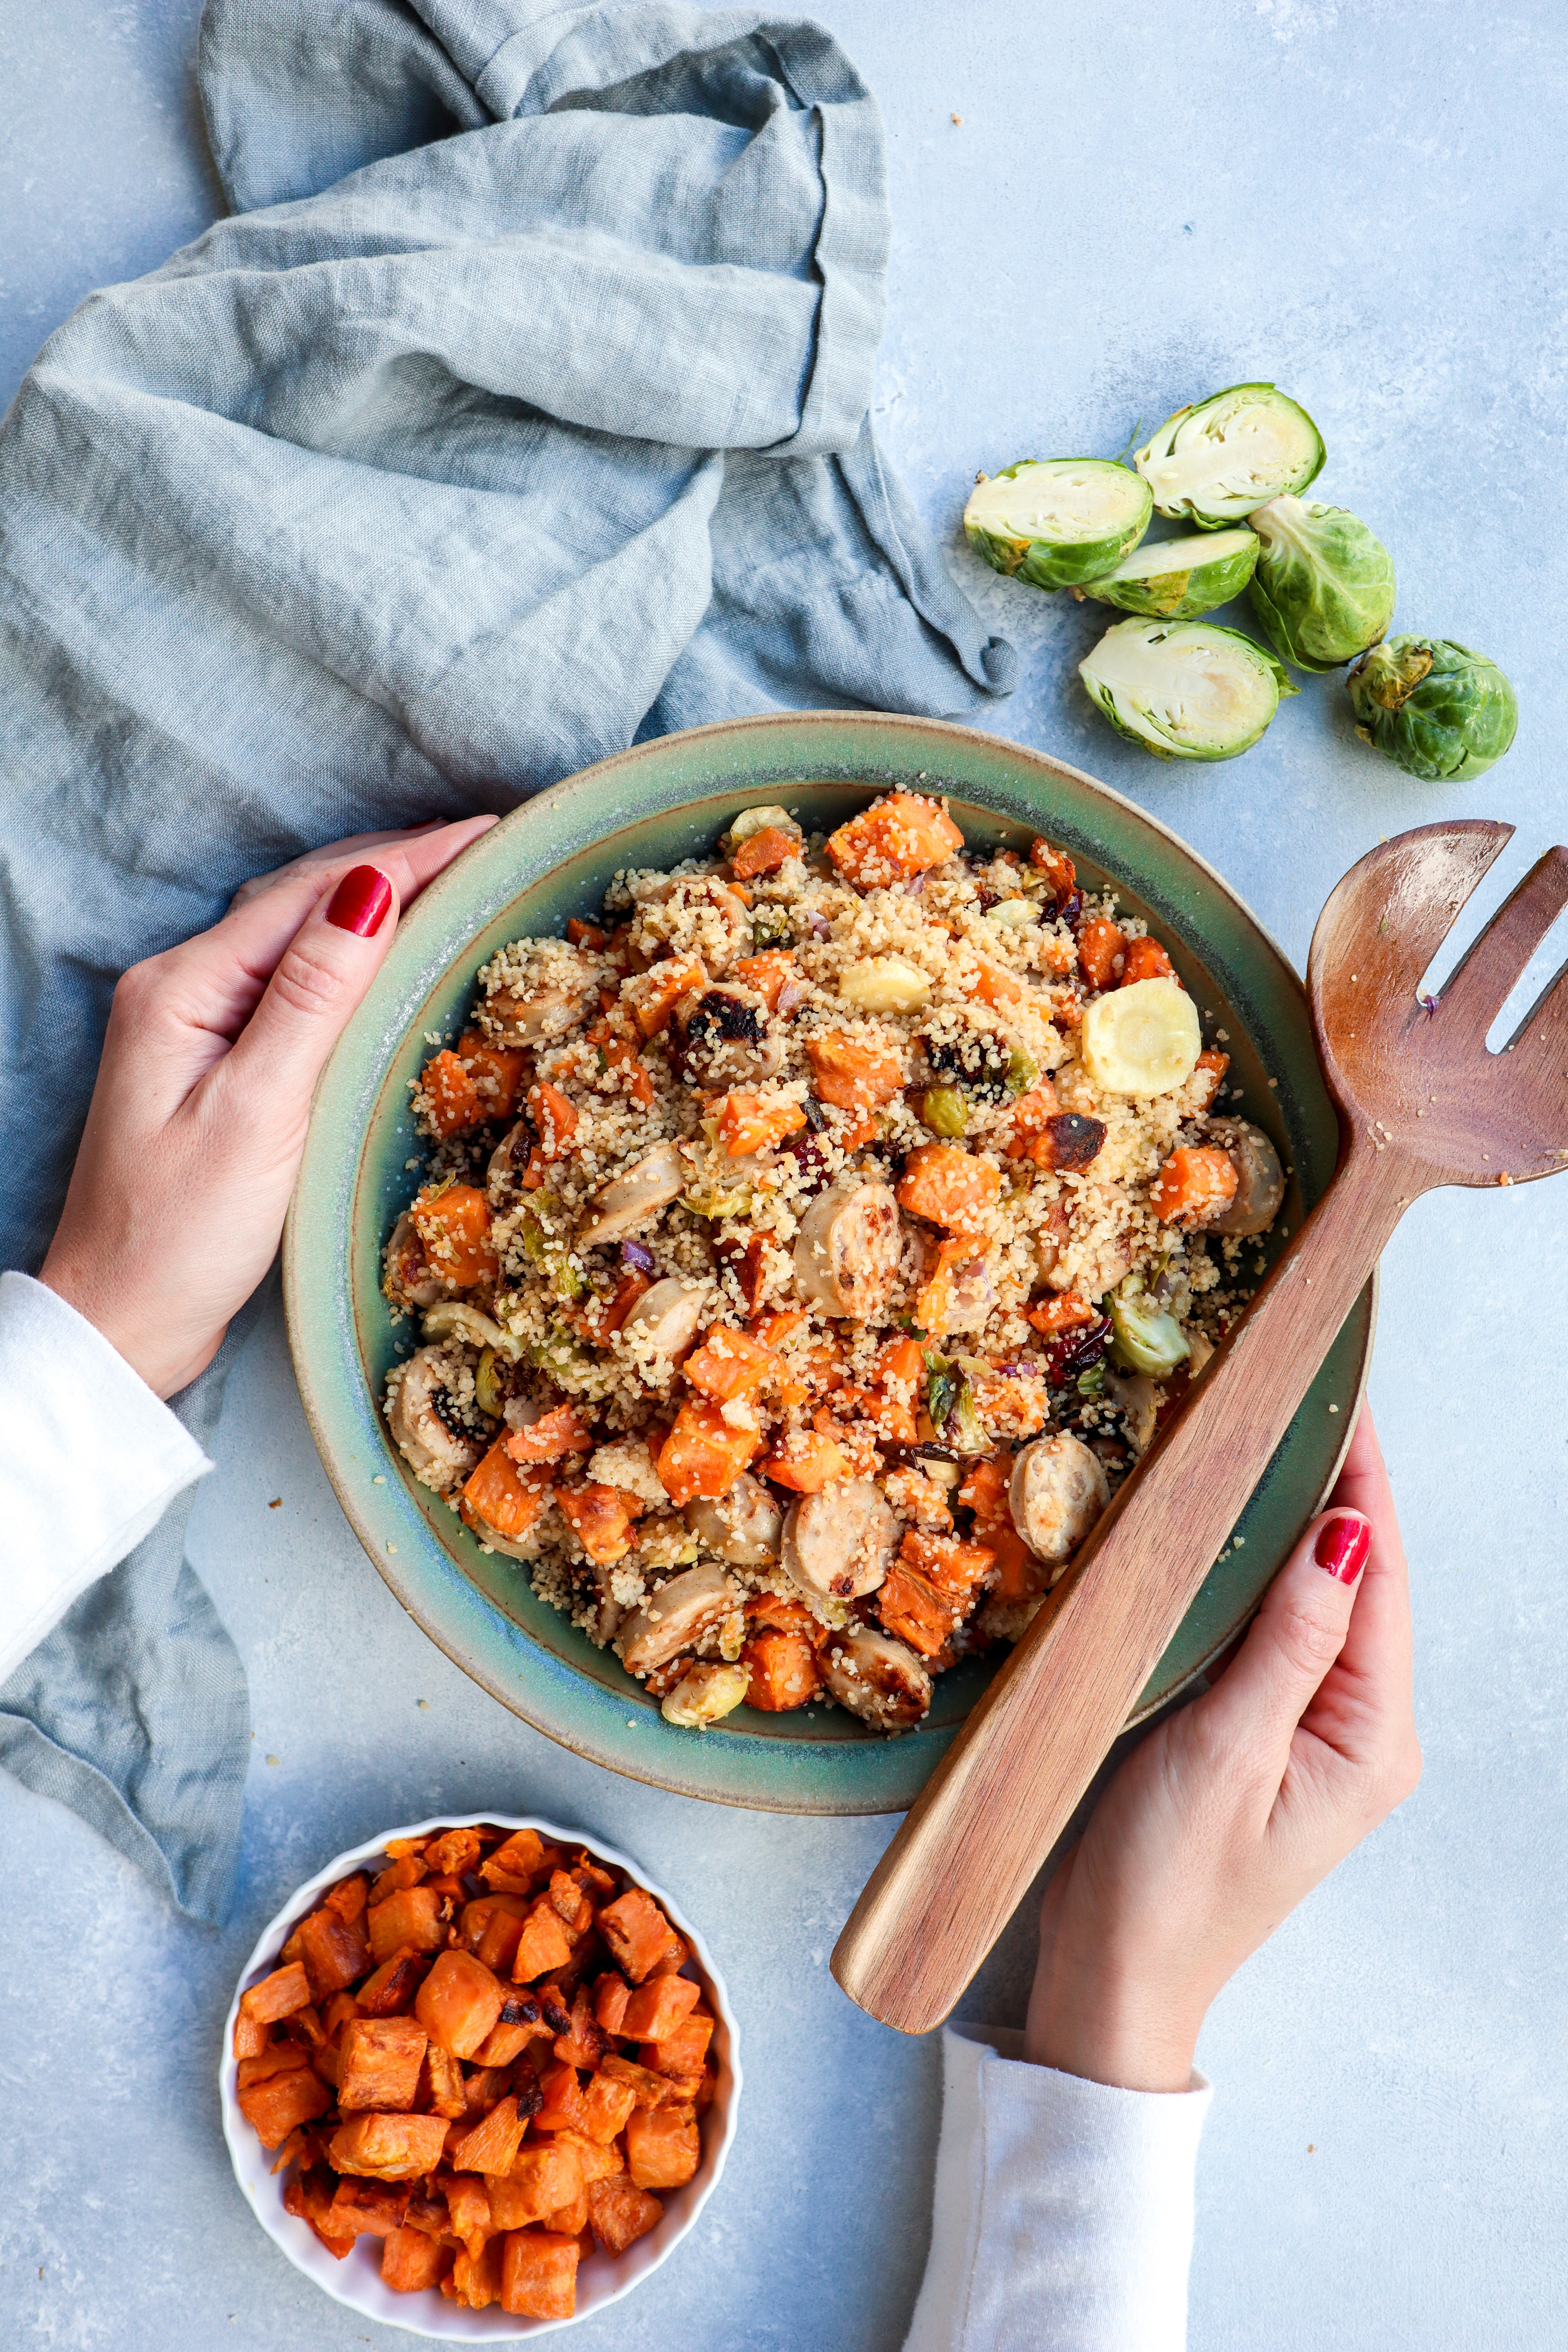 roasted root vegetable couscous with chicken apple sausage